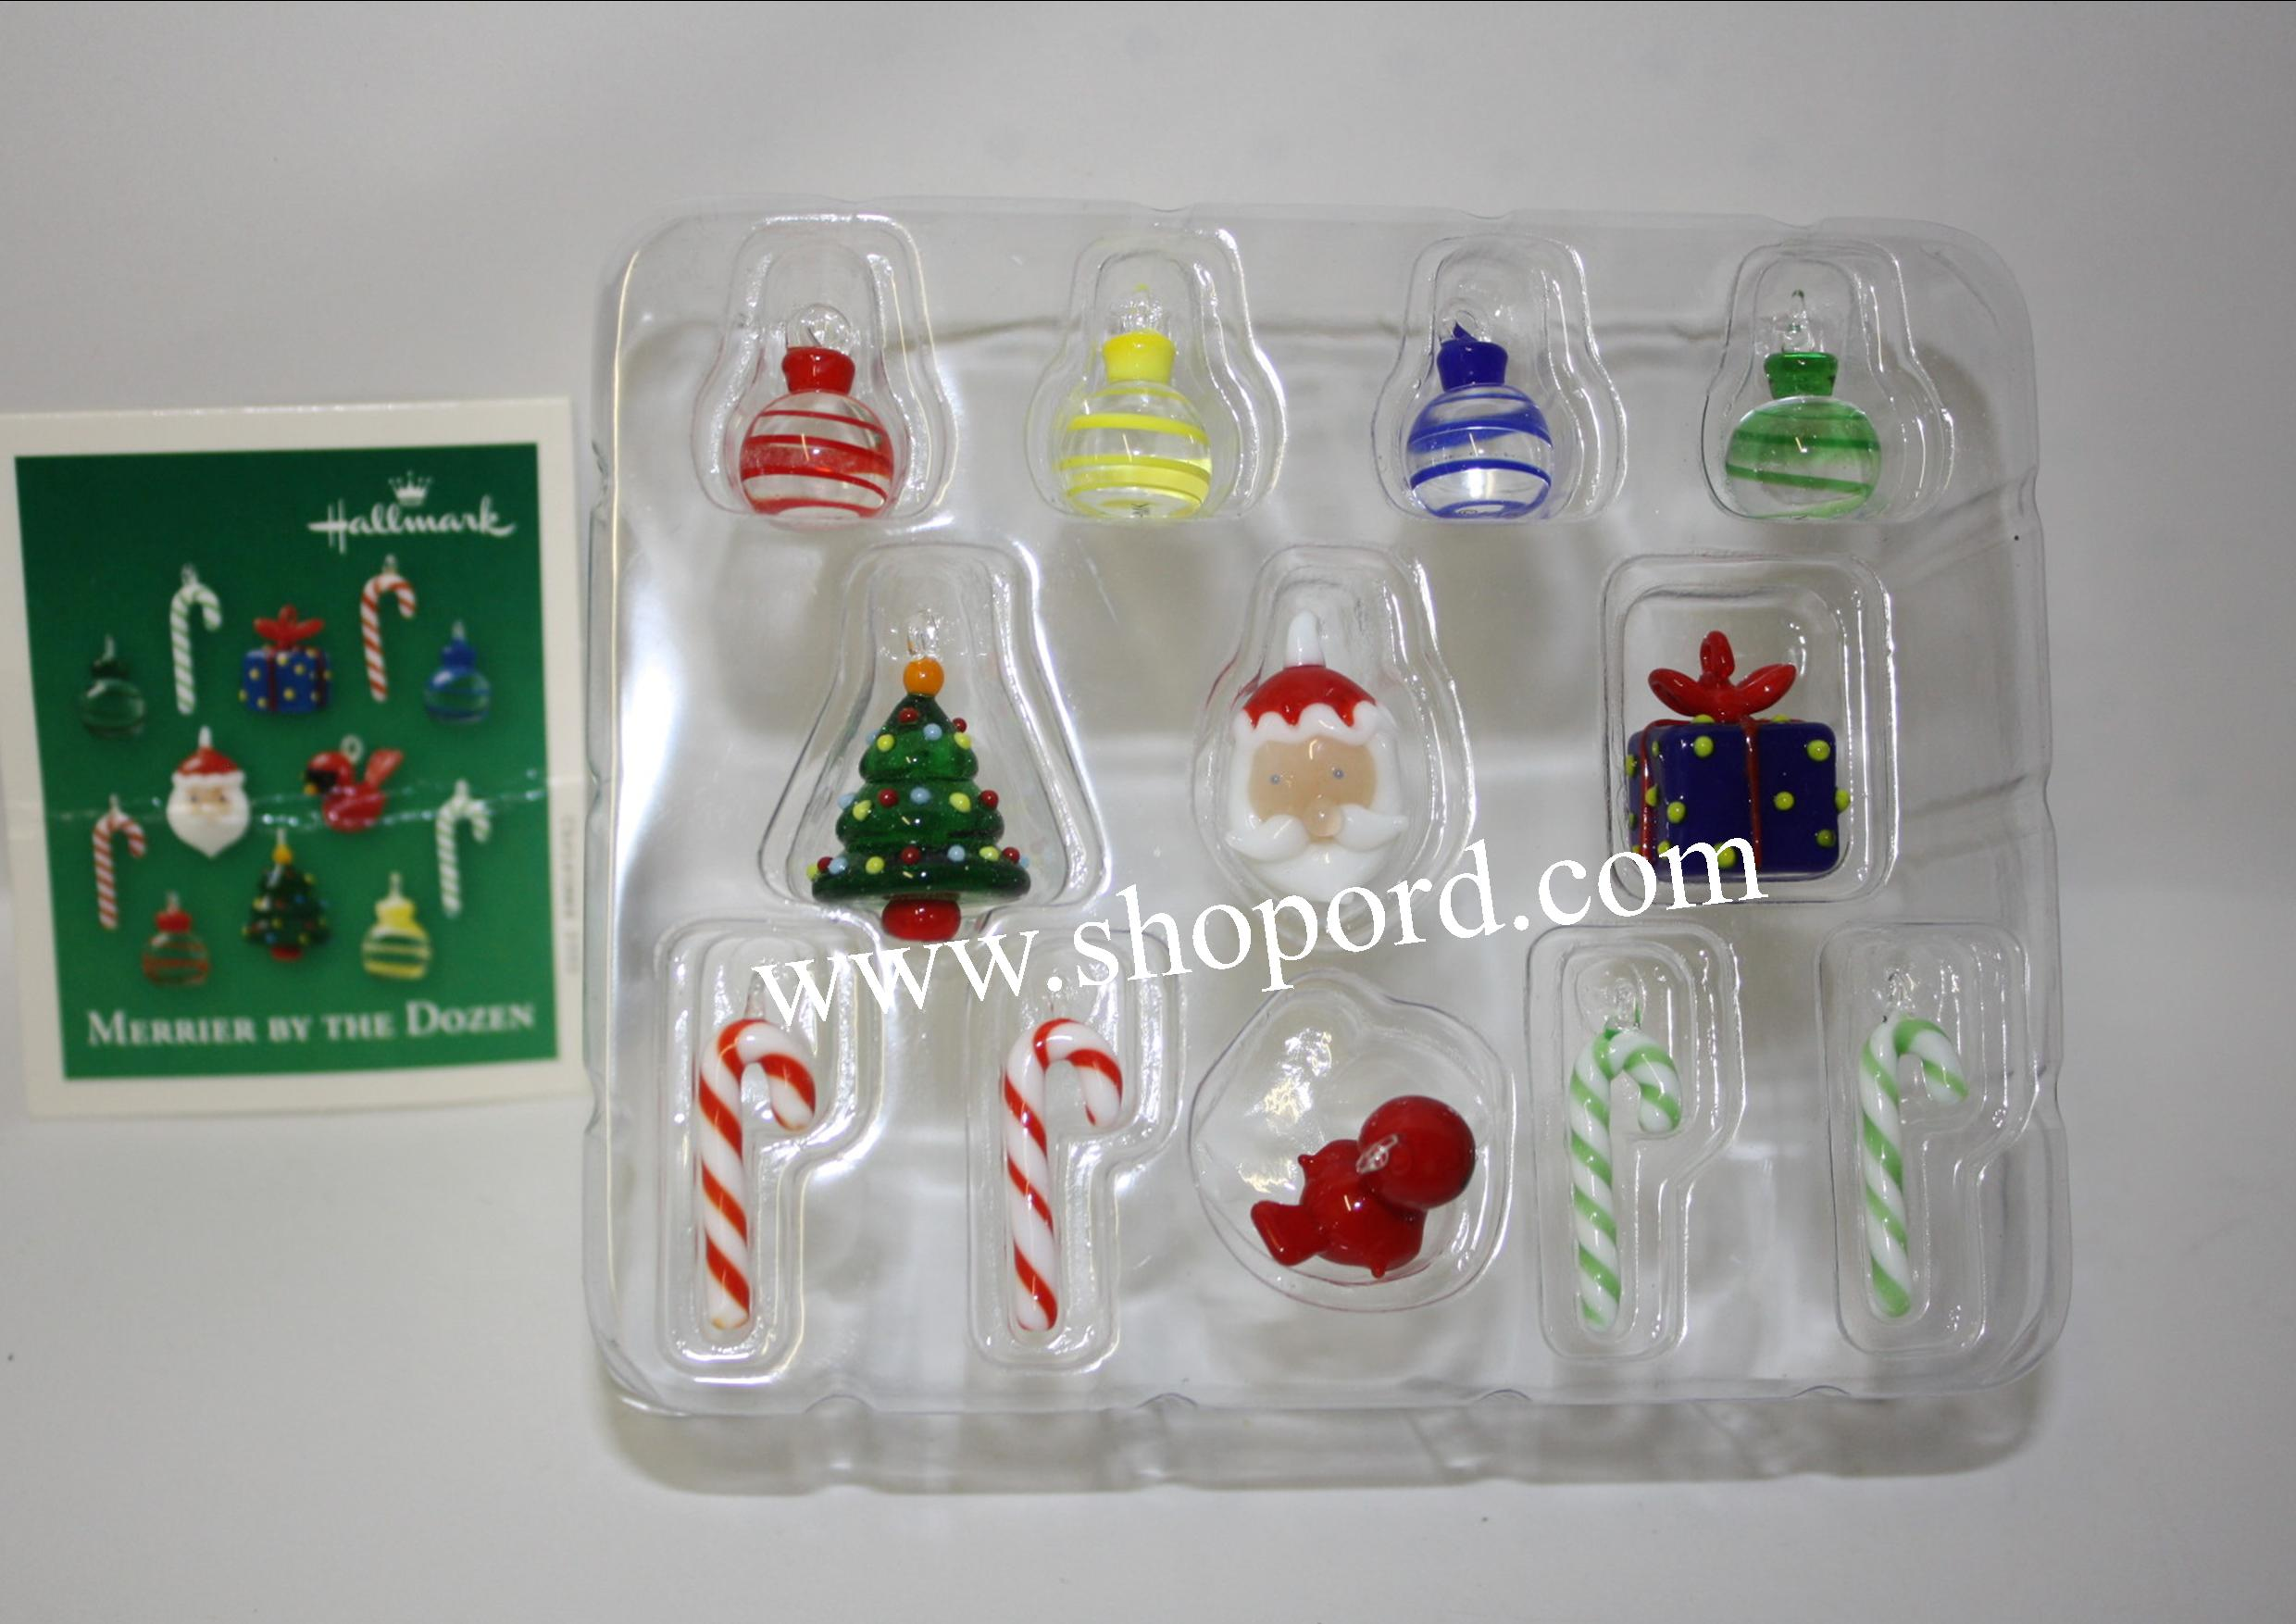 Hallmark 2003 Merrier By The Dozen Miniature Ornament set of 12 QXM5049